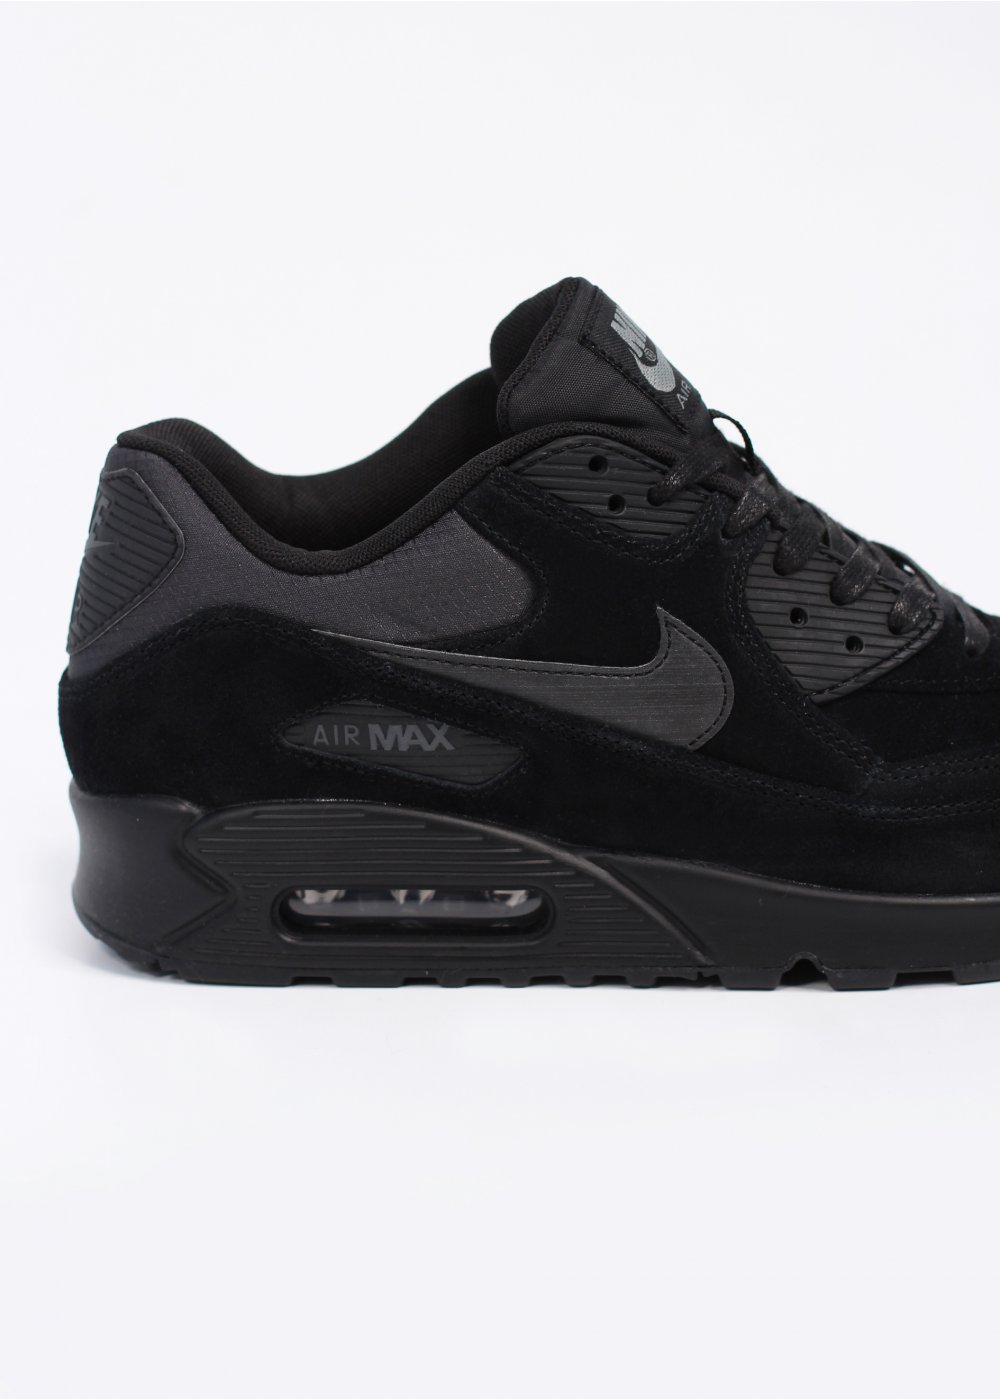 best website 0d951 bef13 ... nike air max 90 premium charcoal suede . ...